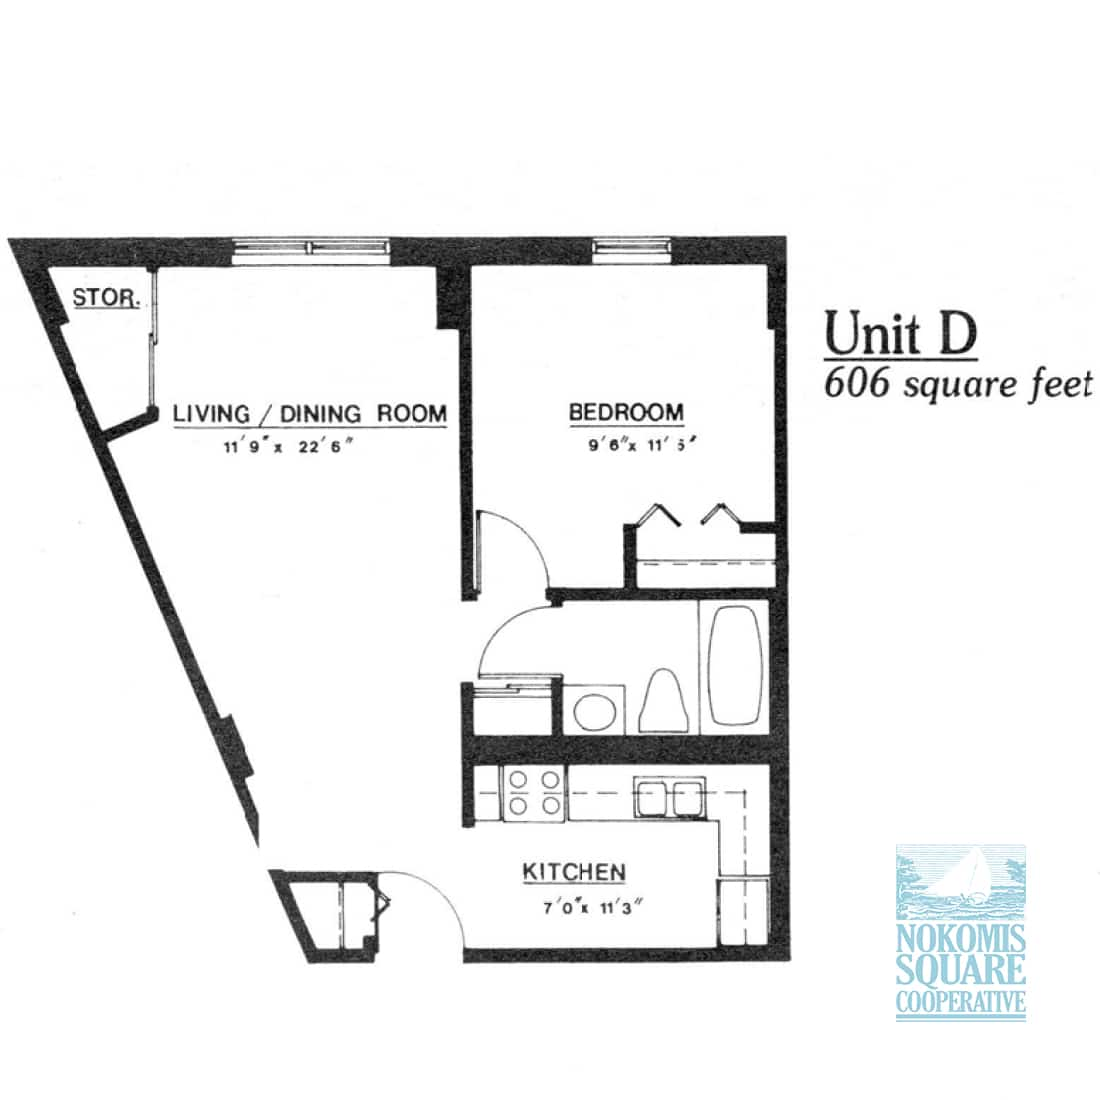 1 br Floorplan Unit D - Nokomis Square Senior Cooperative